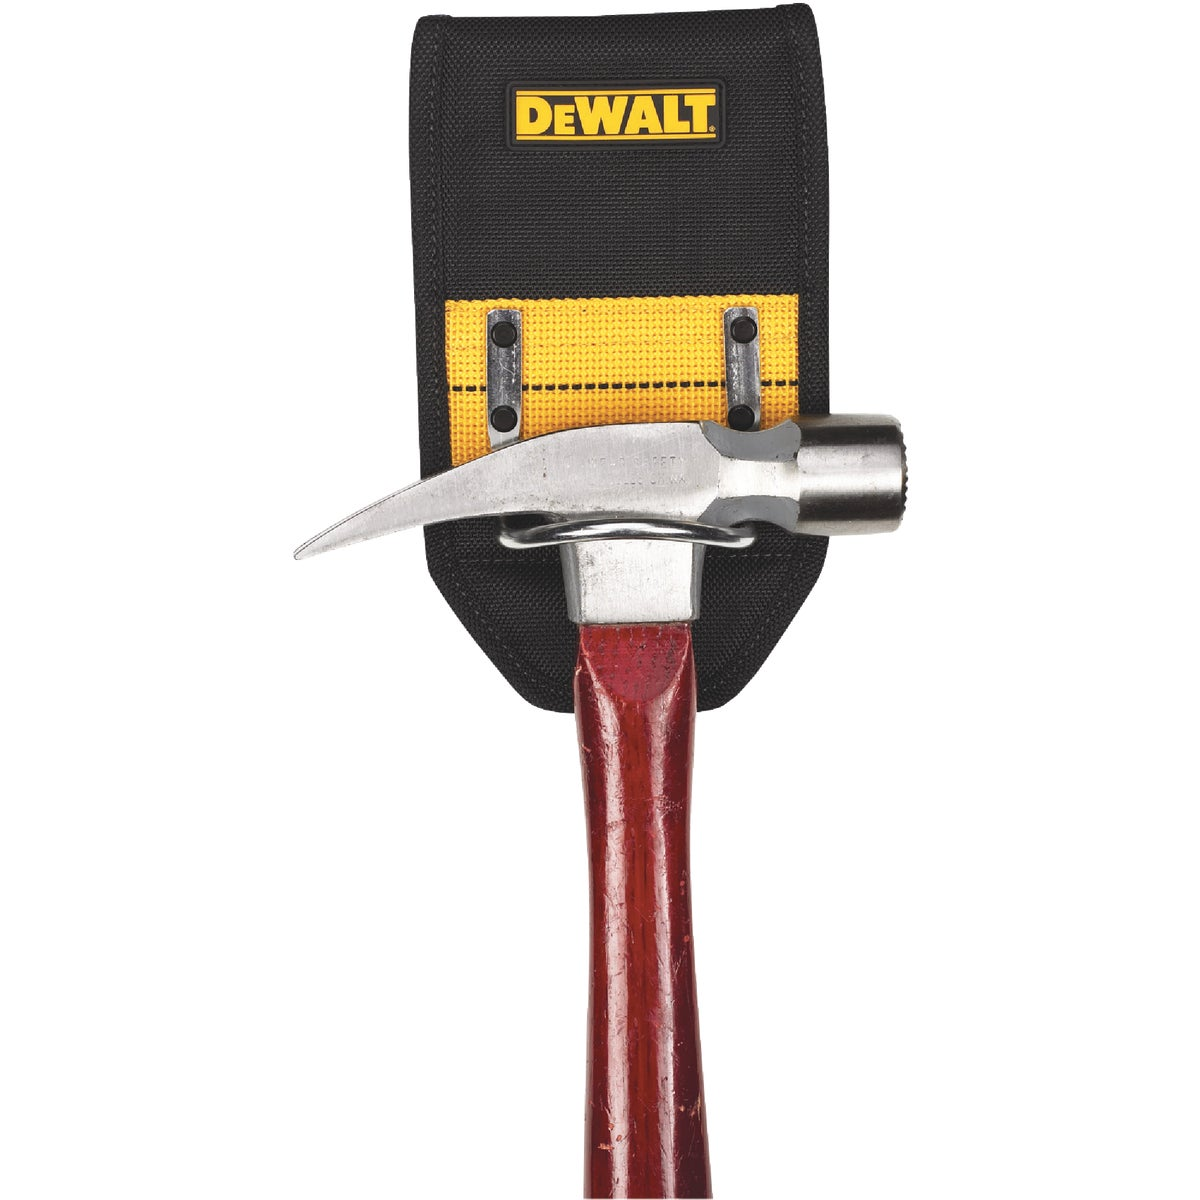 DEWALT HS HAMMER HOLDER - DG5139 by Custom Leathercraft